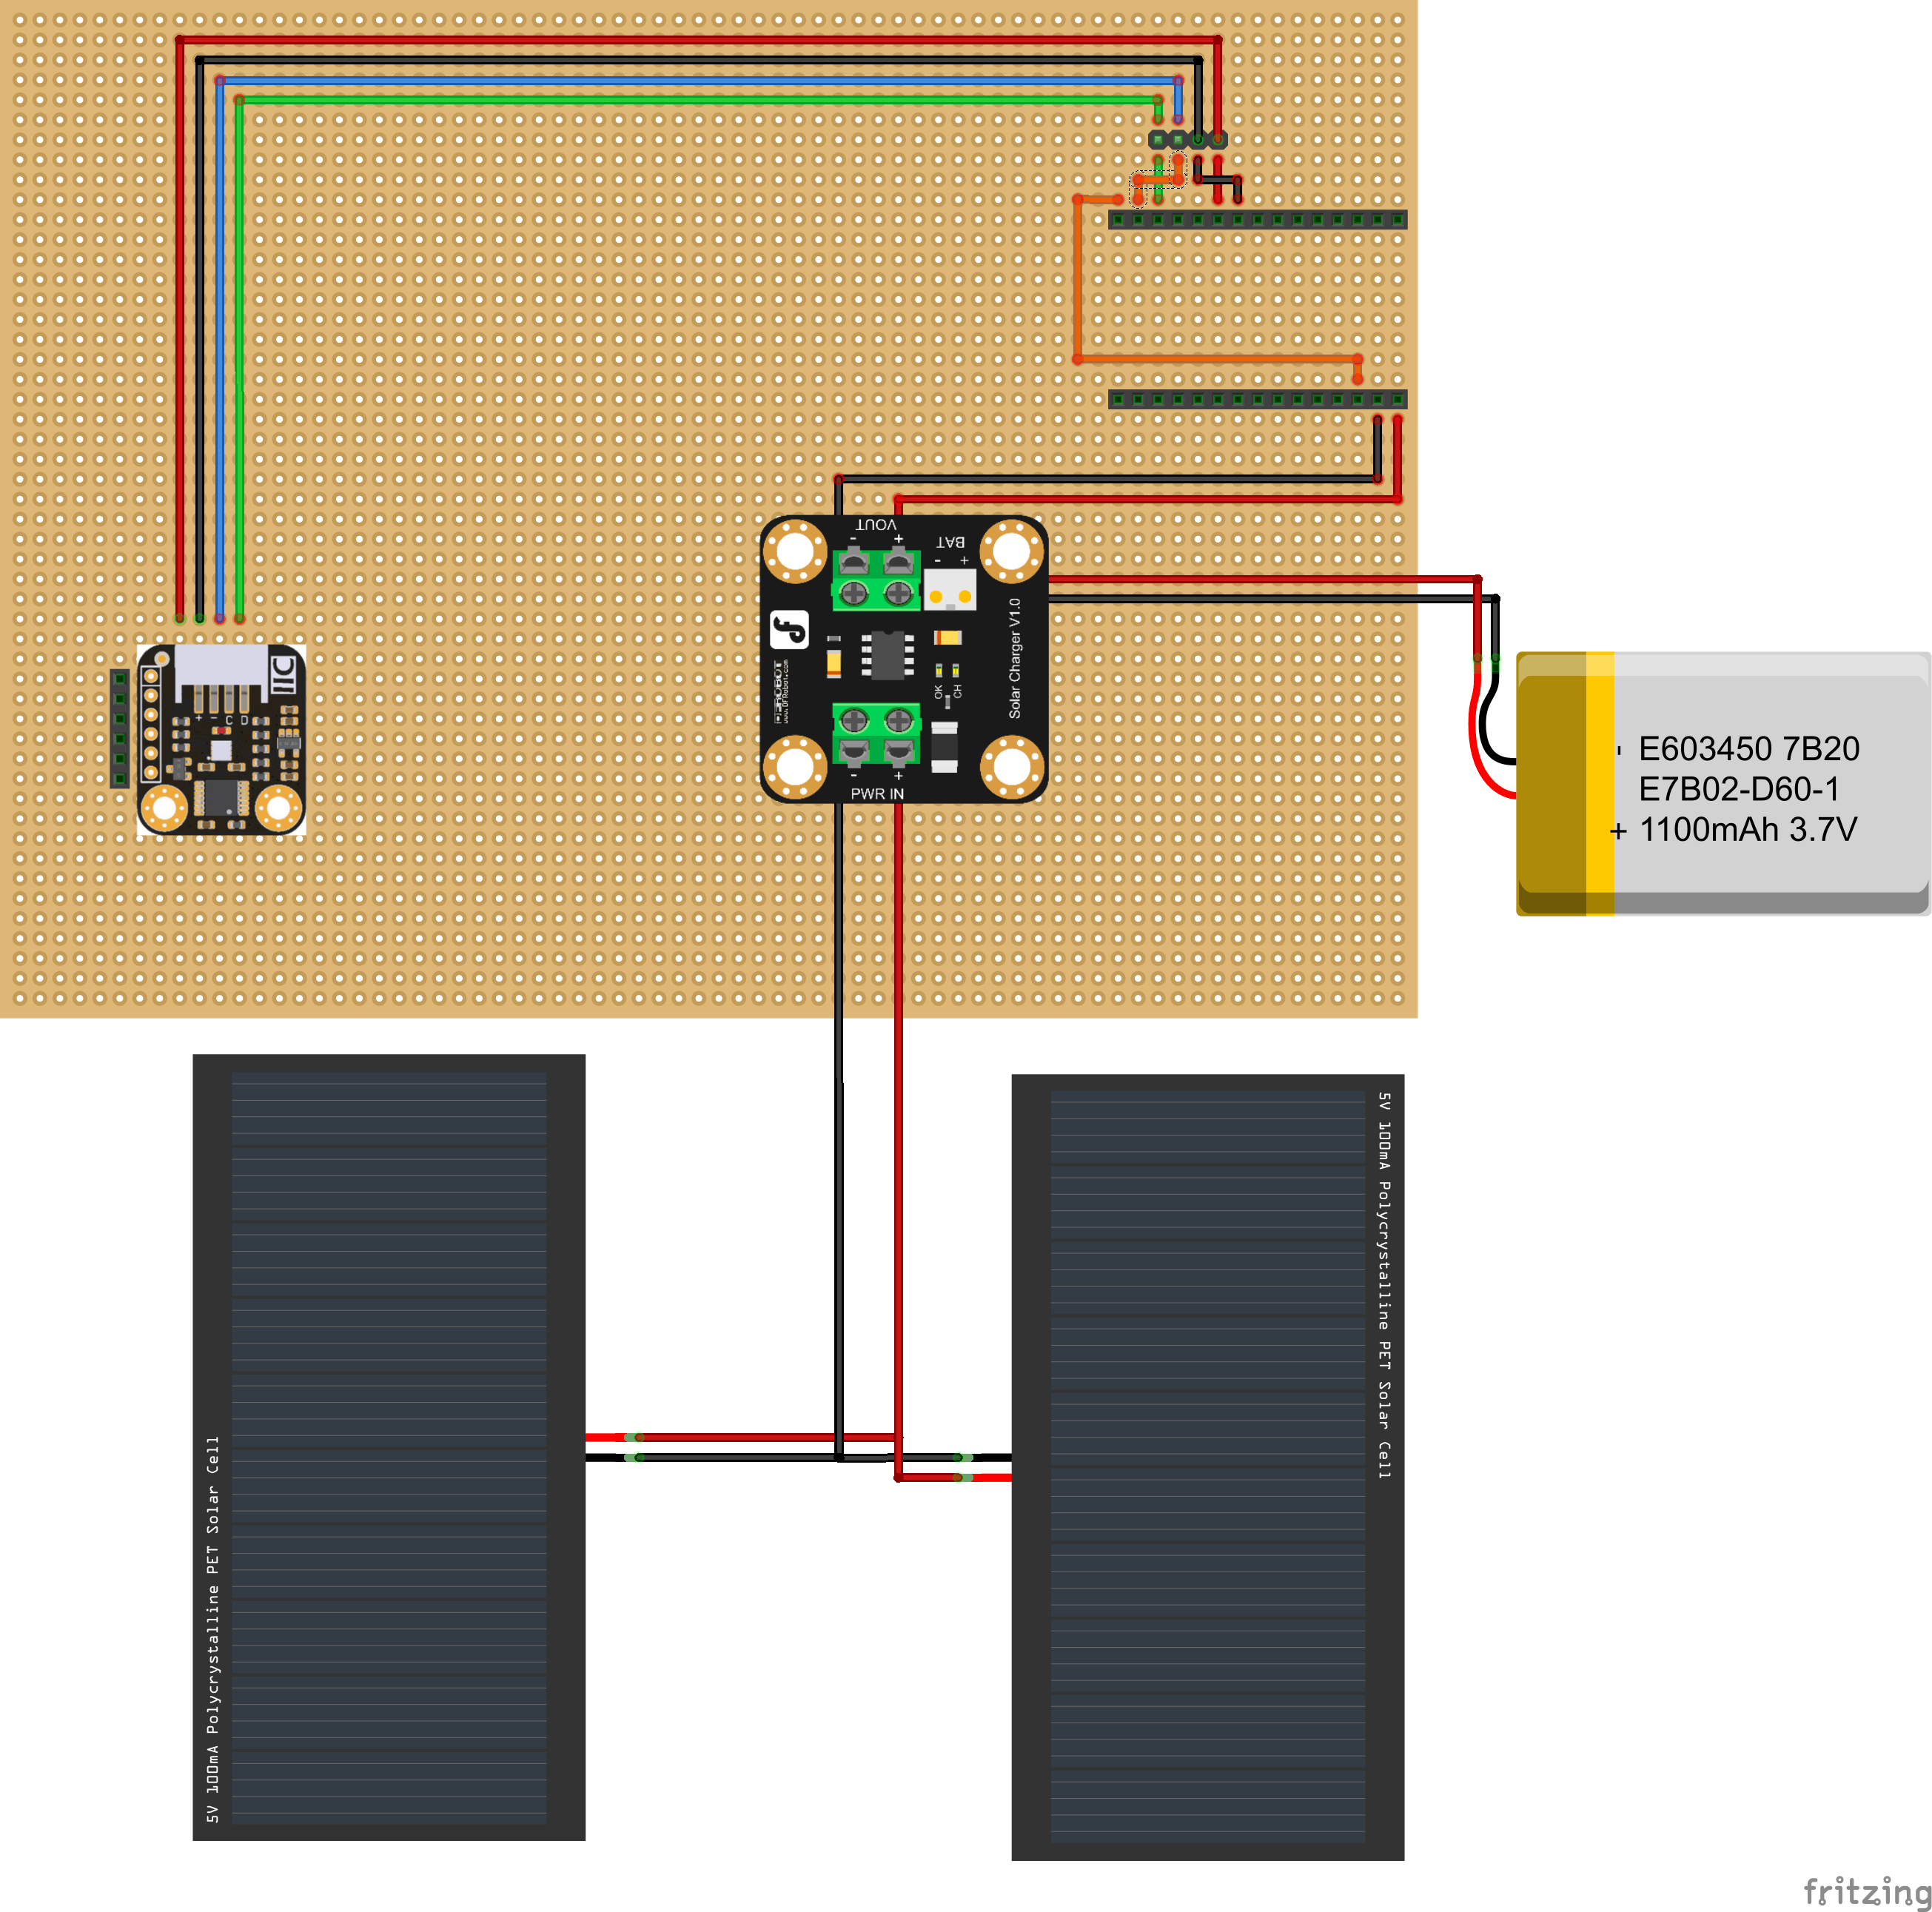 Perfboard Layout